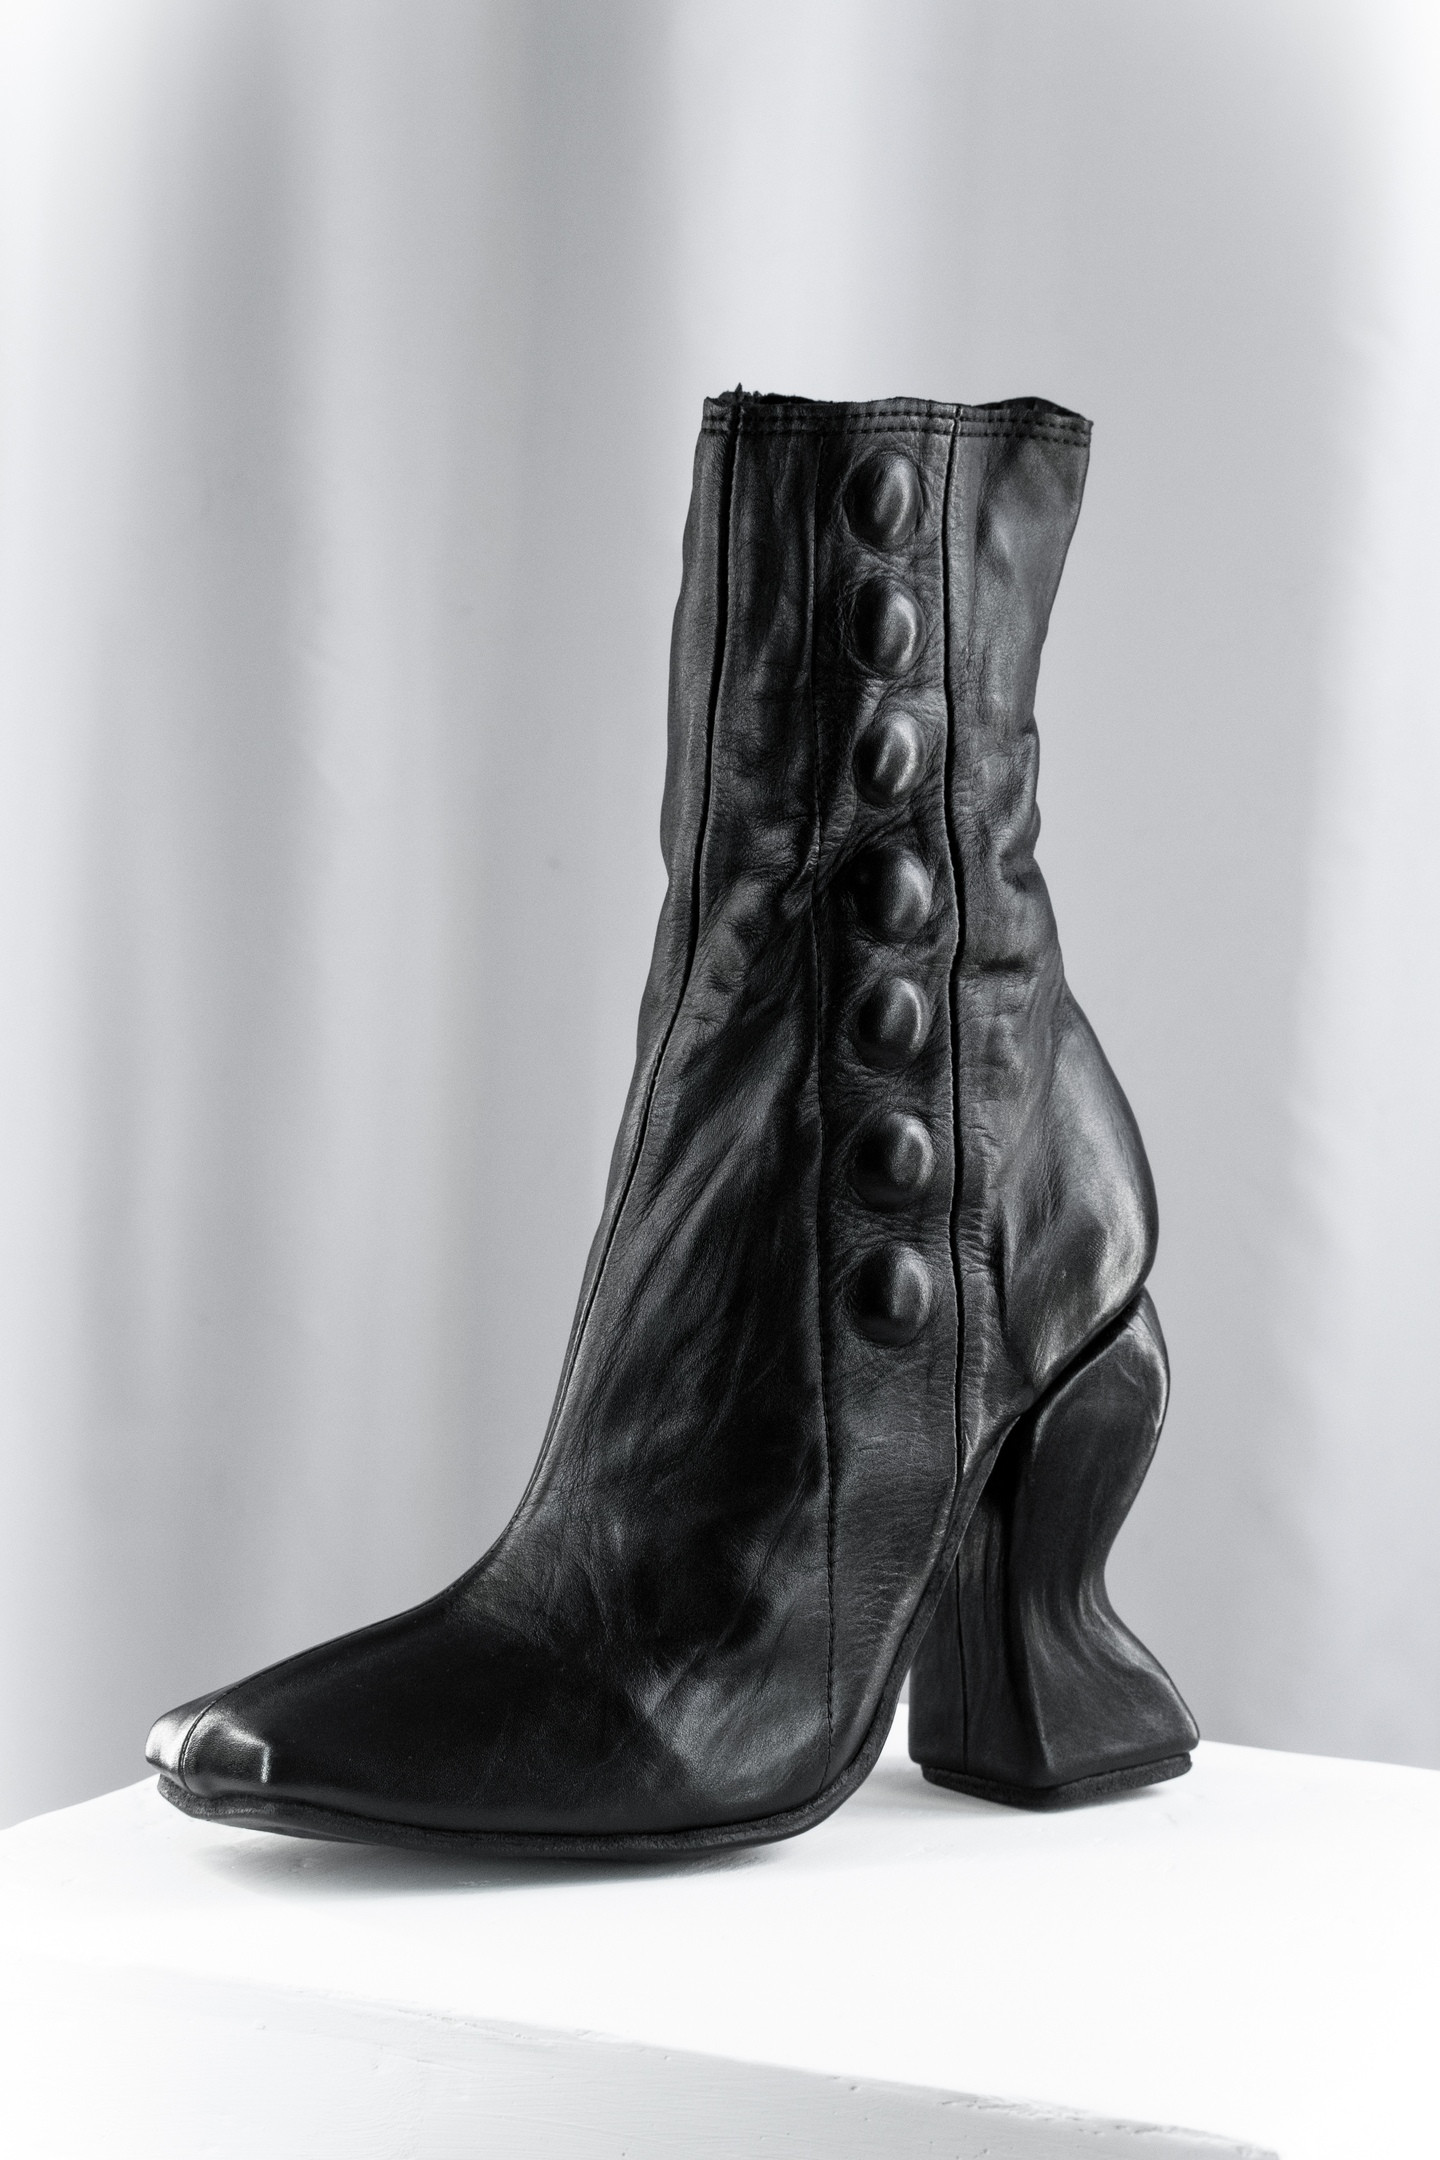 'Vanessa' Curved heel Button Boots